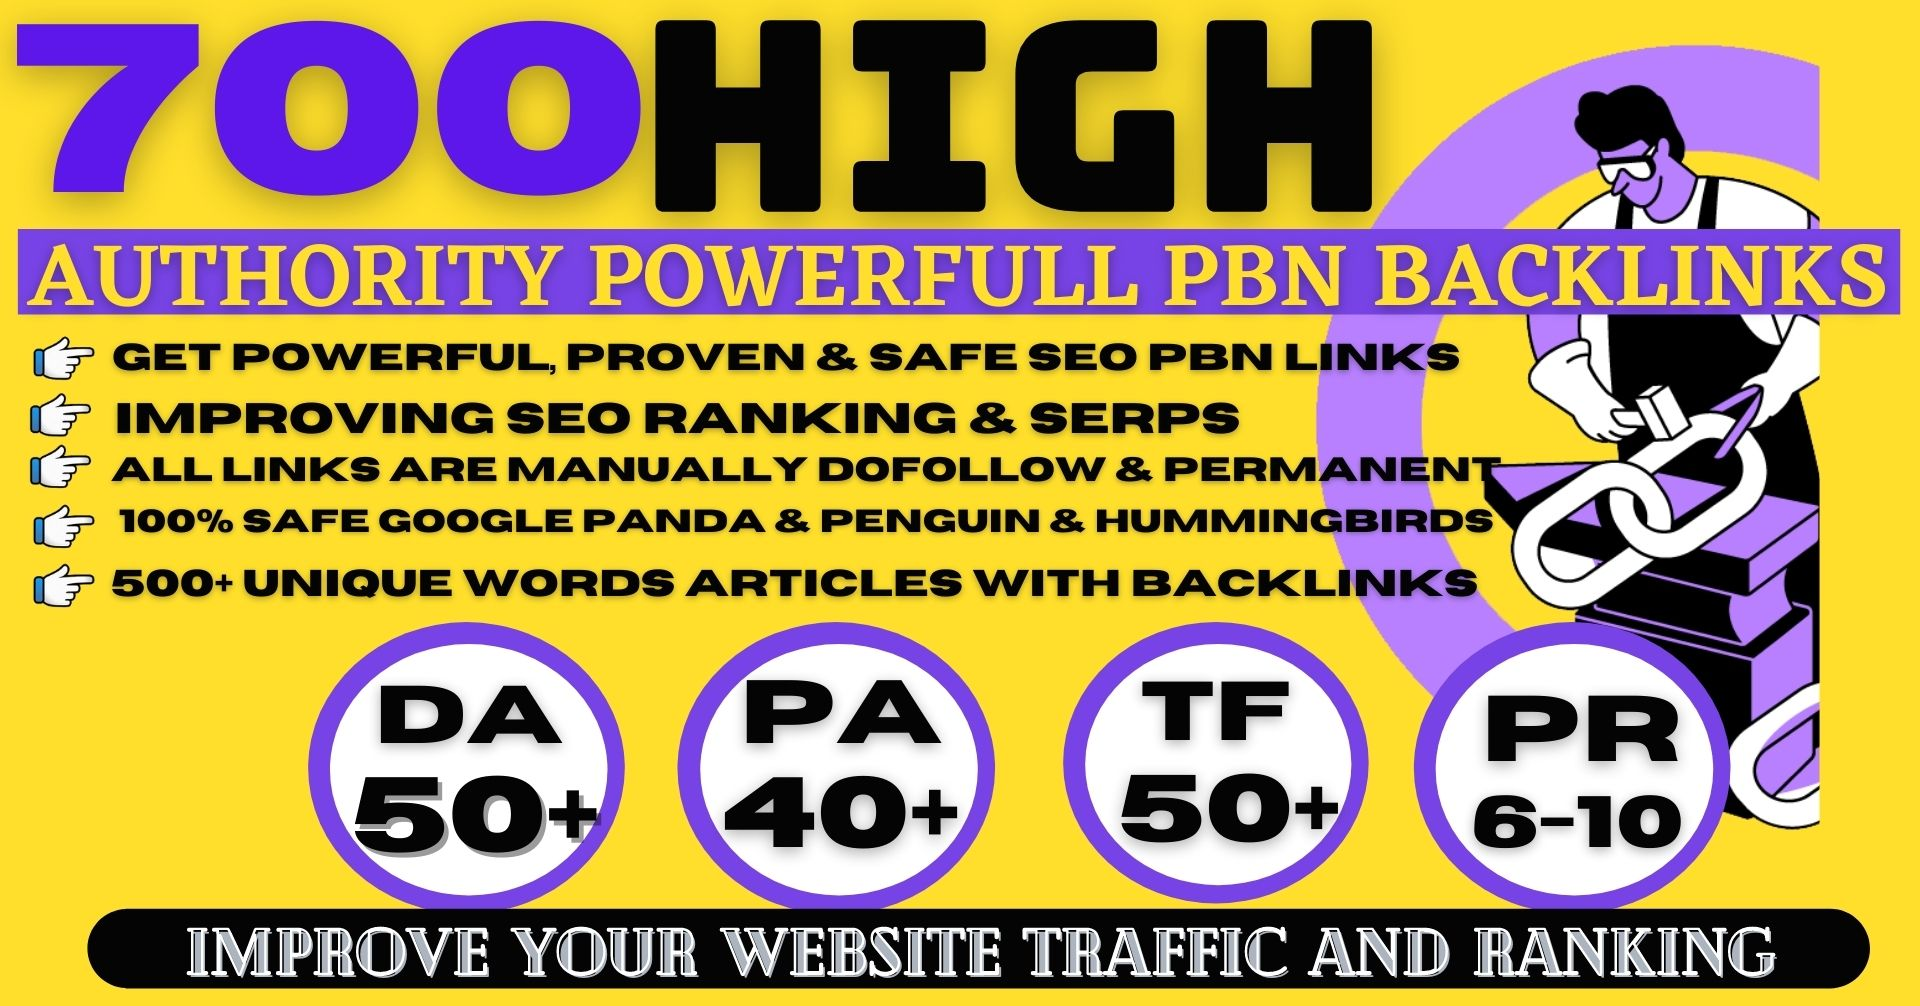 Permanent 700+ PBN Backlinks High DA50+ PA40+ PR5+ Do-follow Links Homepage Unique Web2.0 With websi